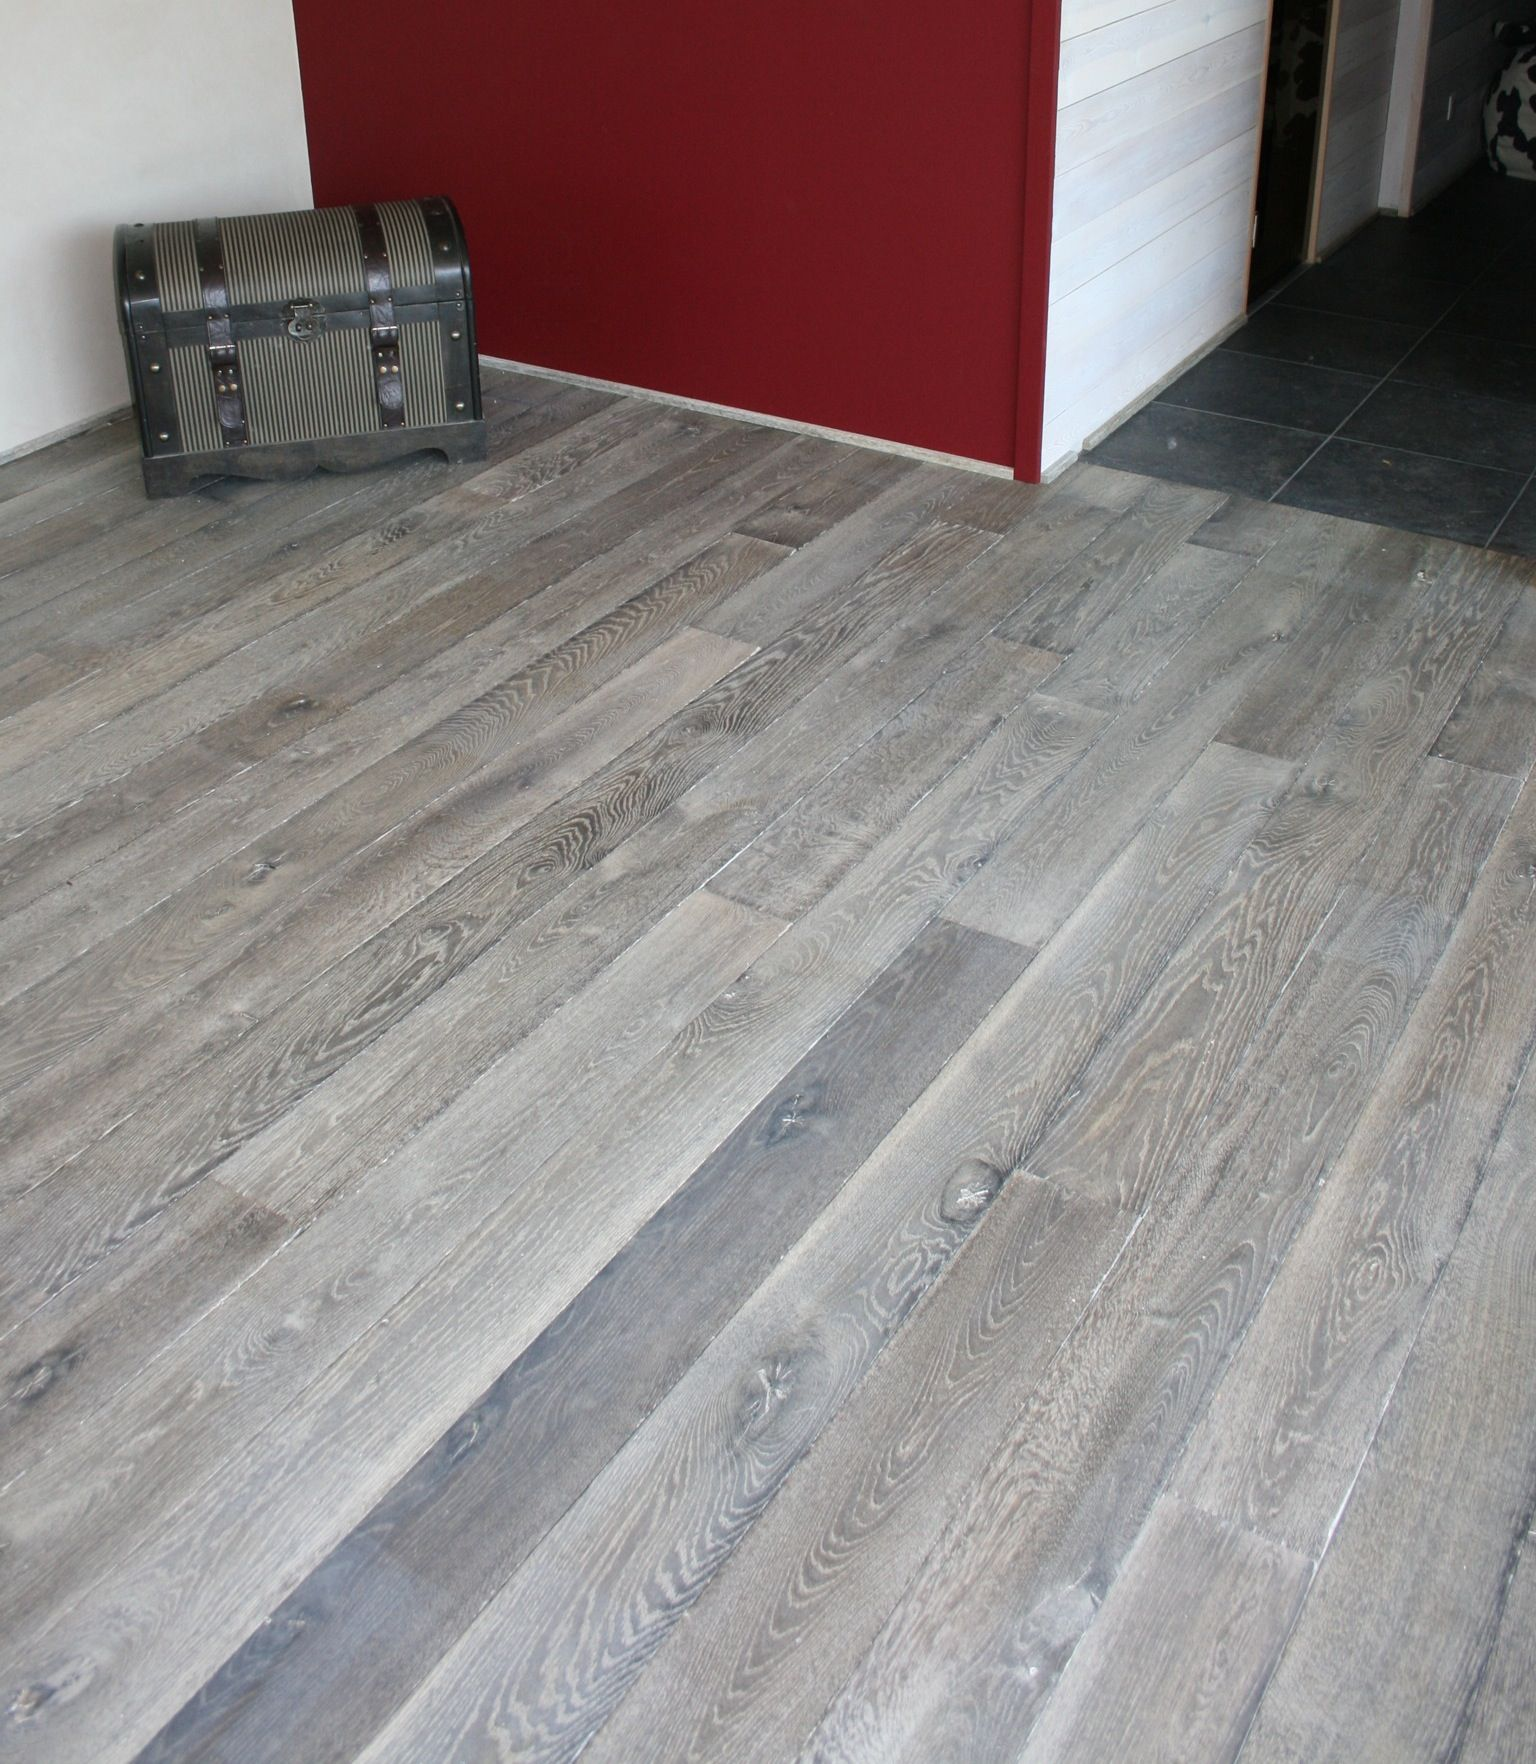 Foto Jpg 1 536 1 764 Pixels Grey Wood Floors Grey Hardwood Floors House Flooring